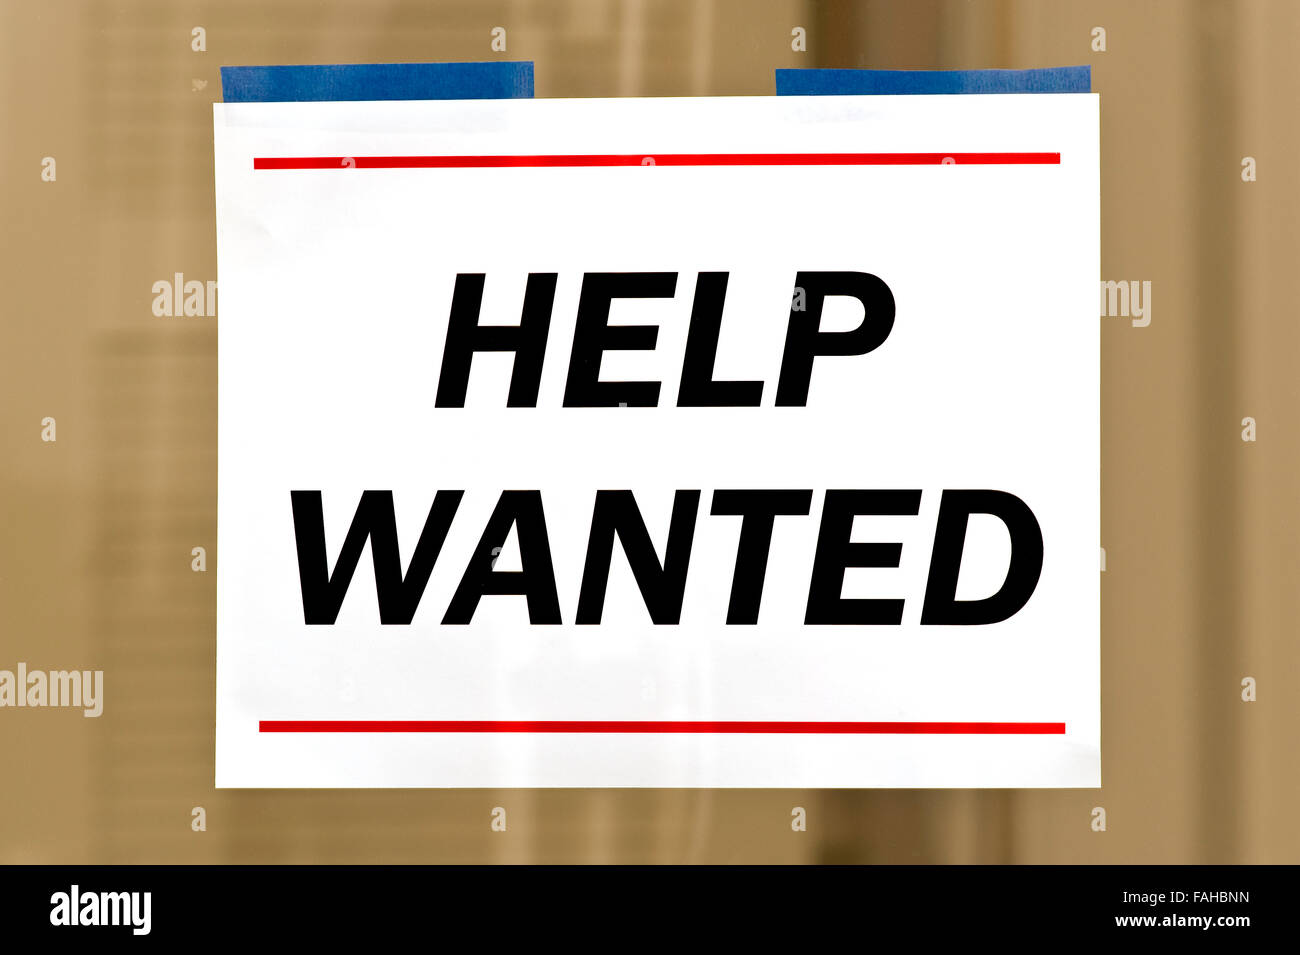 Help Wanted Sign - Stock Image